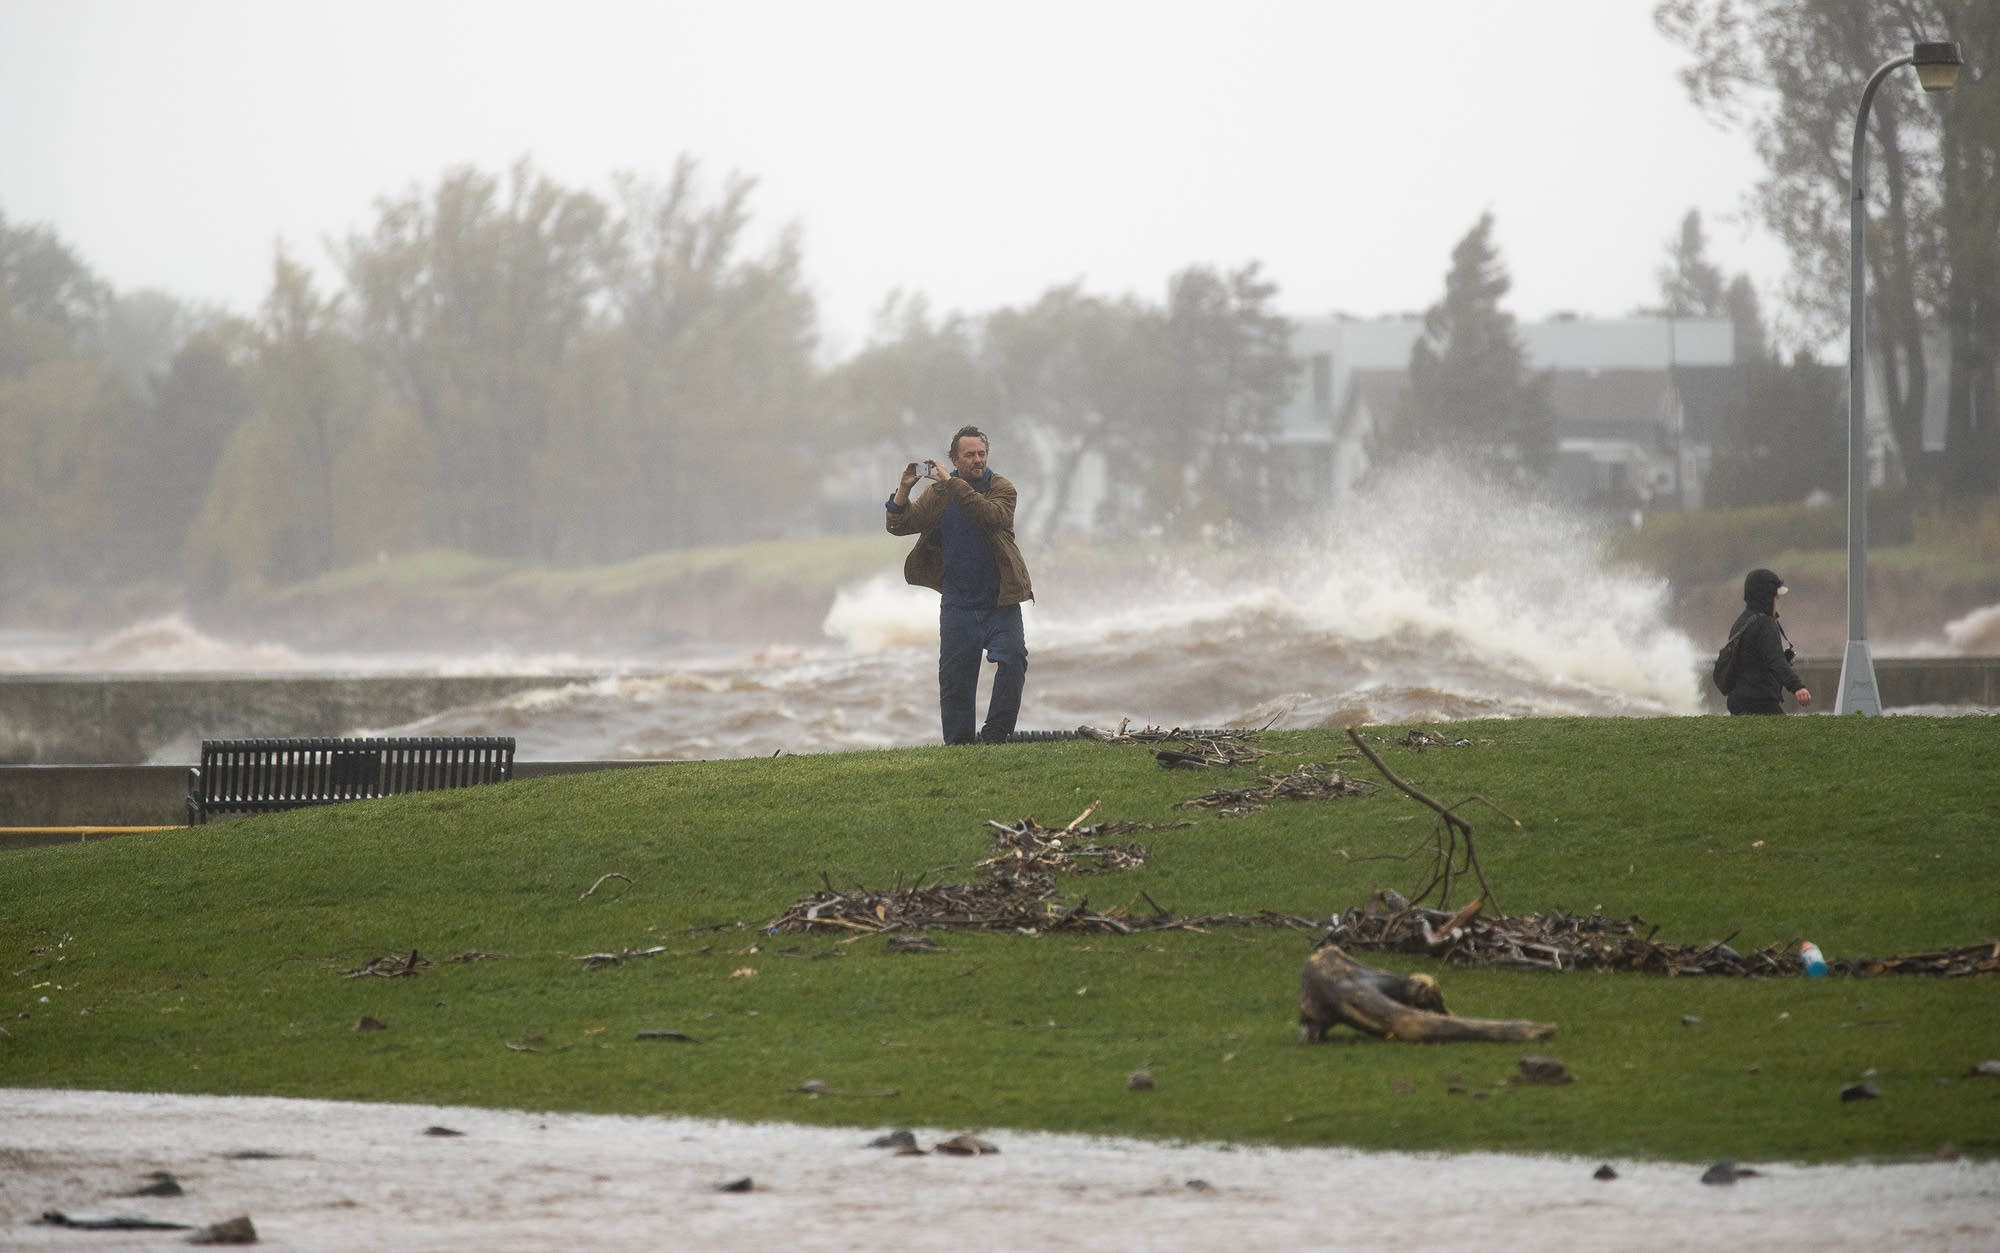 Debris litters the ground in Canal Park